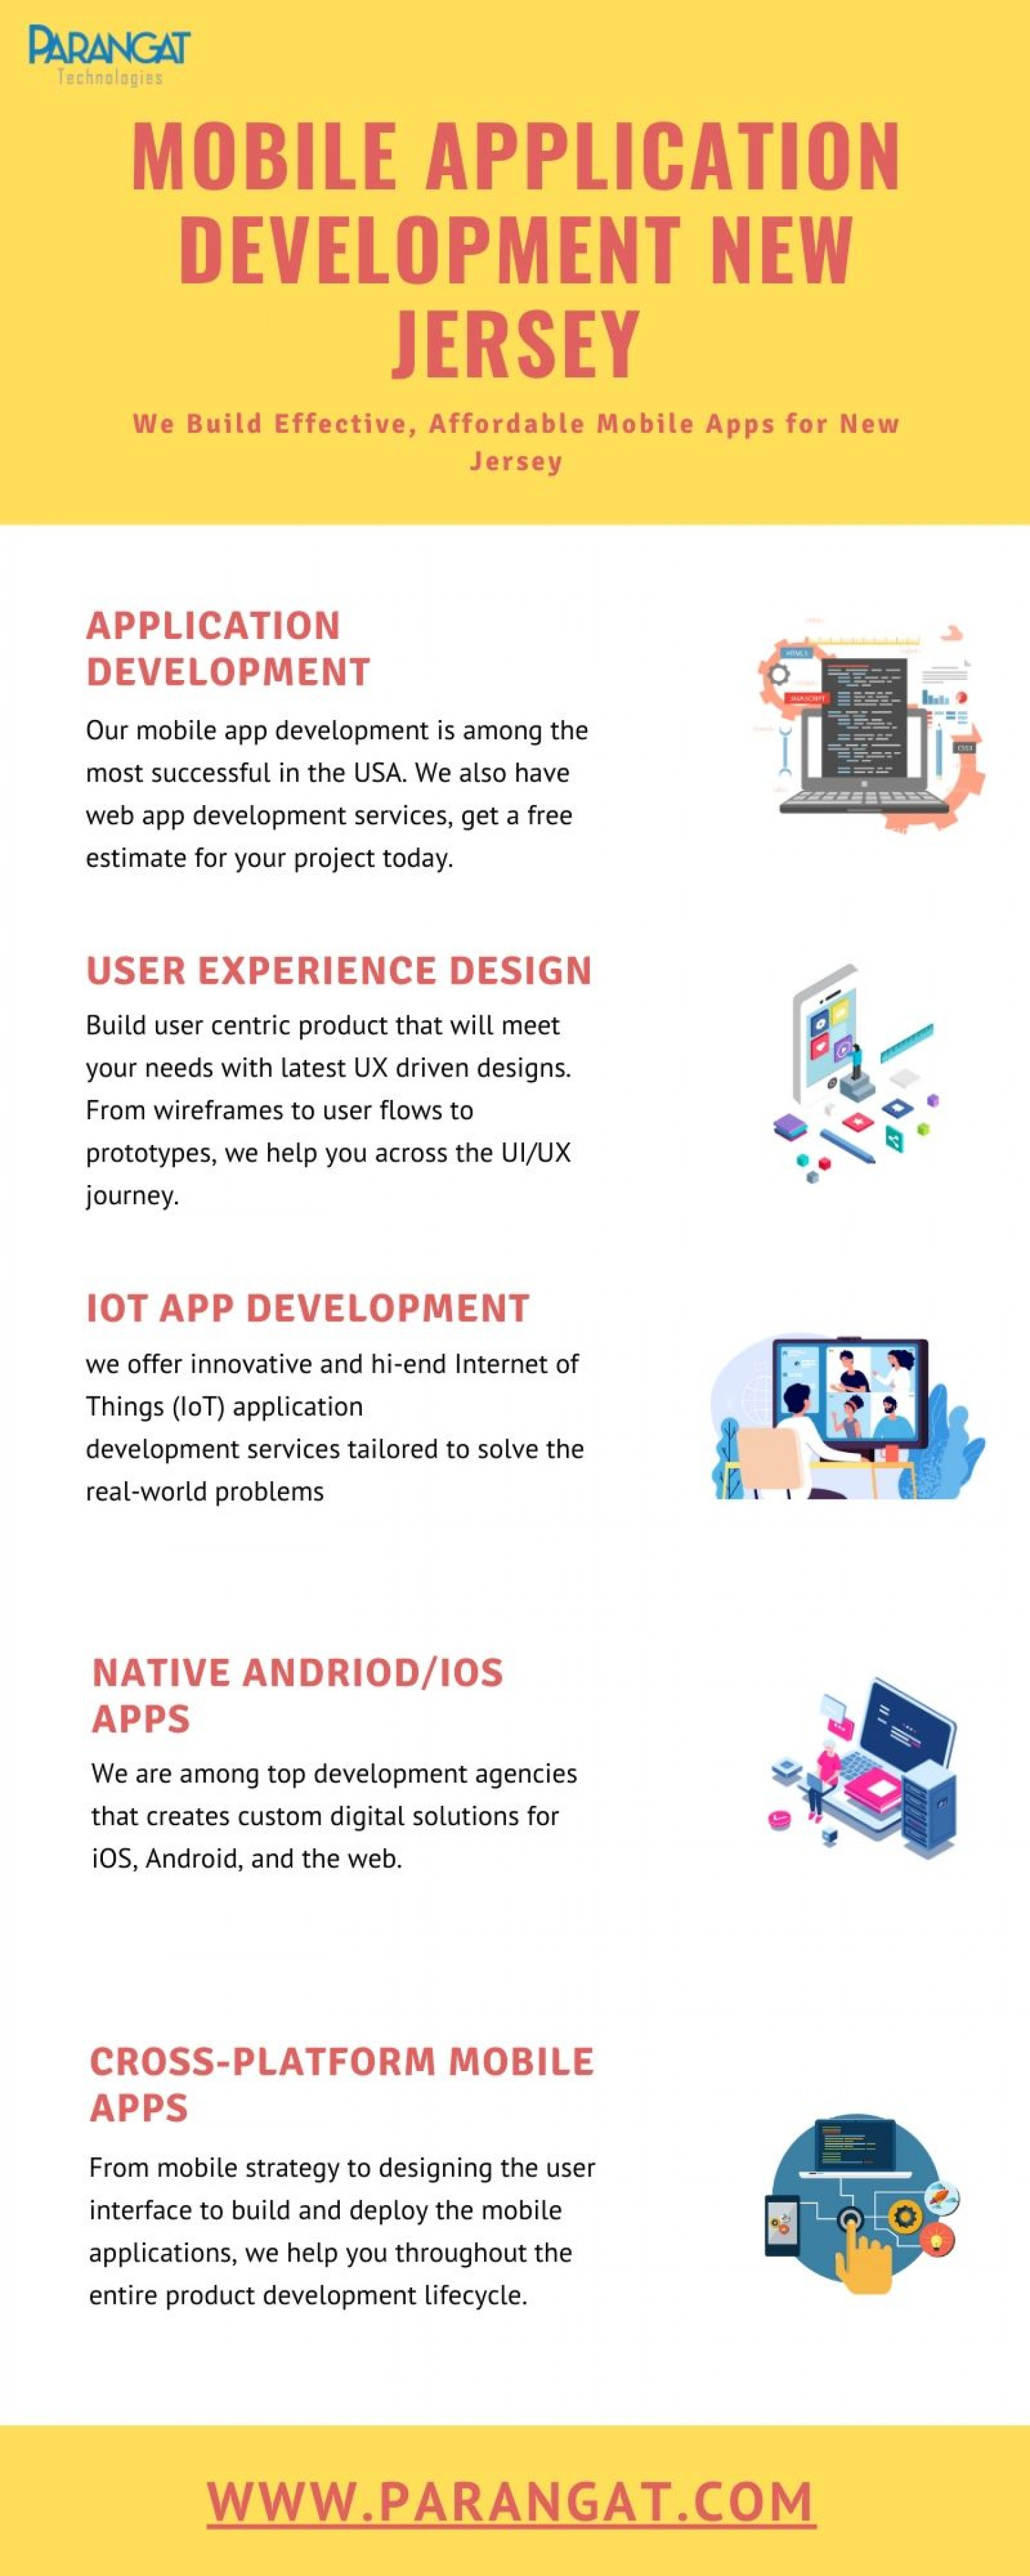 Mobile Application Development New Jersey Infographic